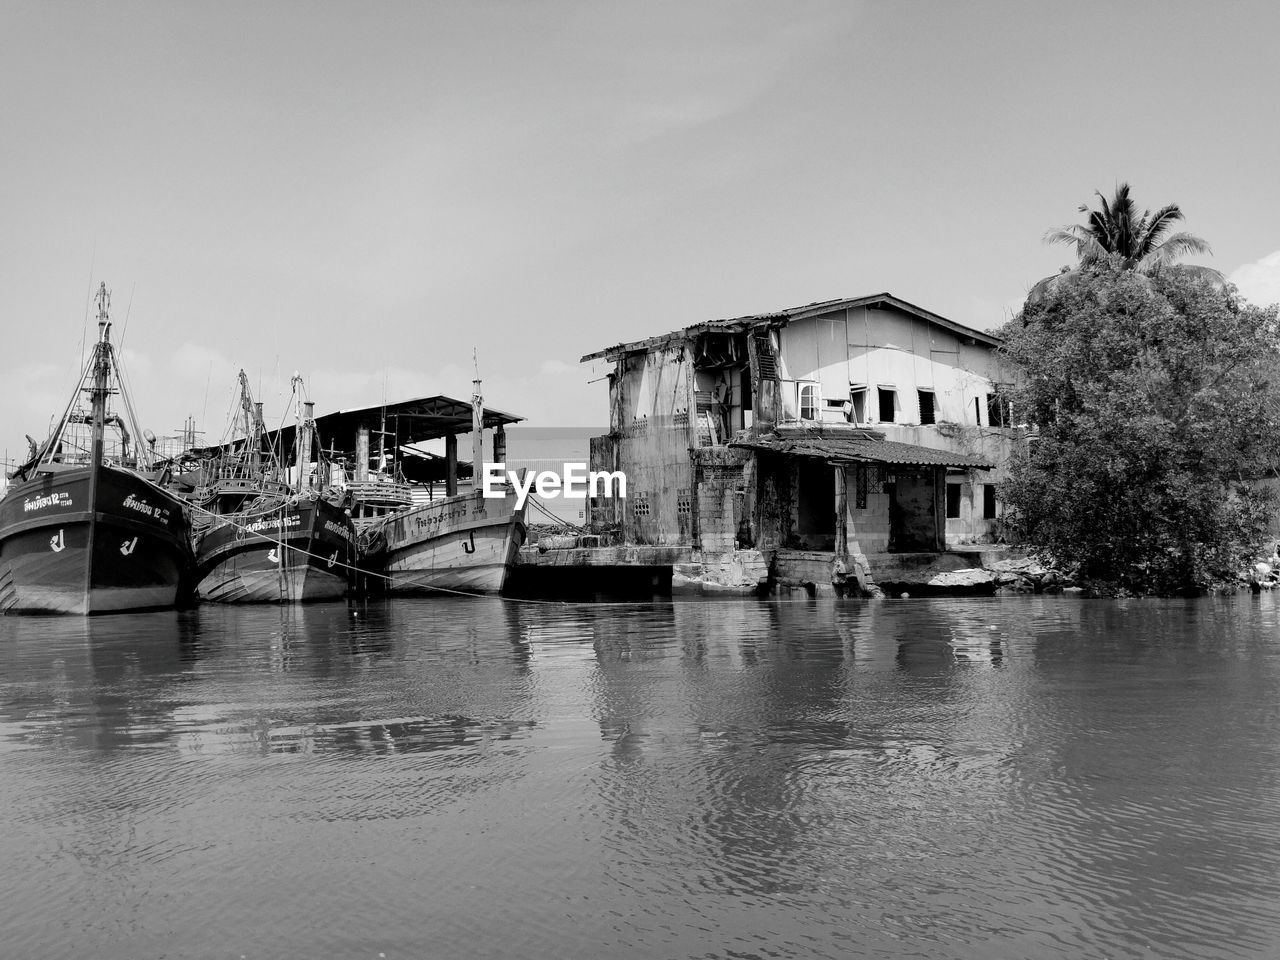 nautical vessel, built structure, architecture, building exterior, water, waterfront, transportation, outdoors, no people, day, moored, sky, nature